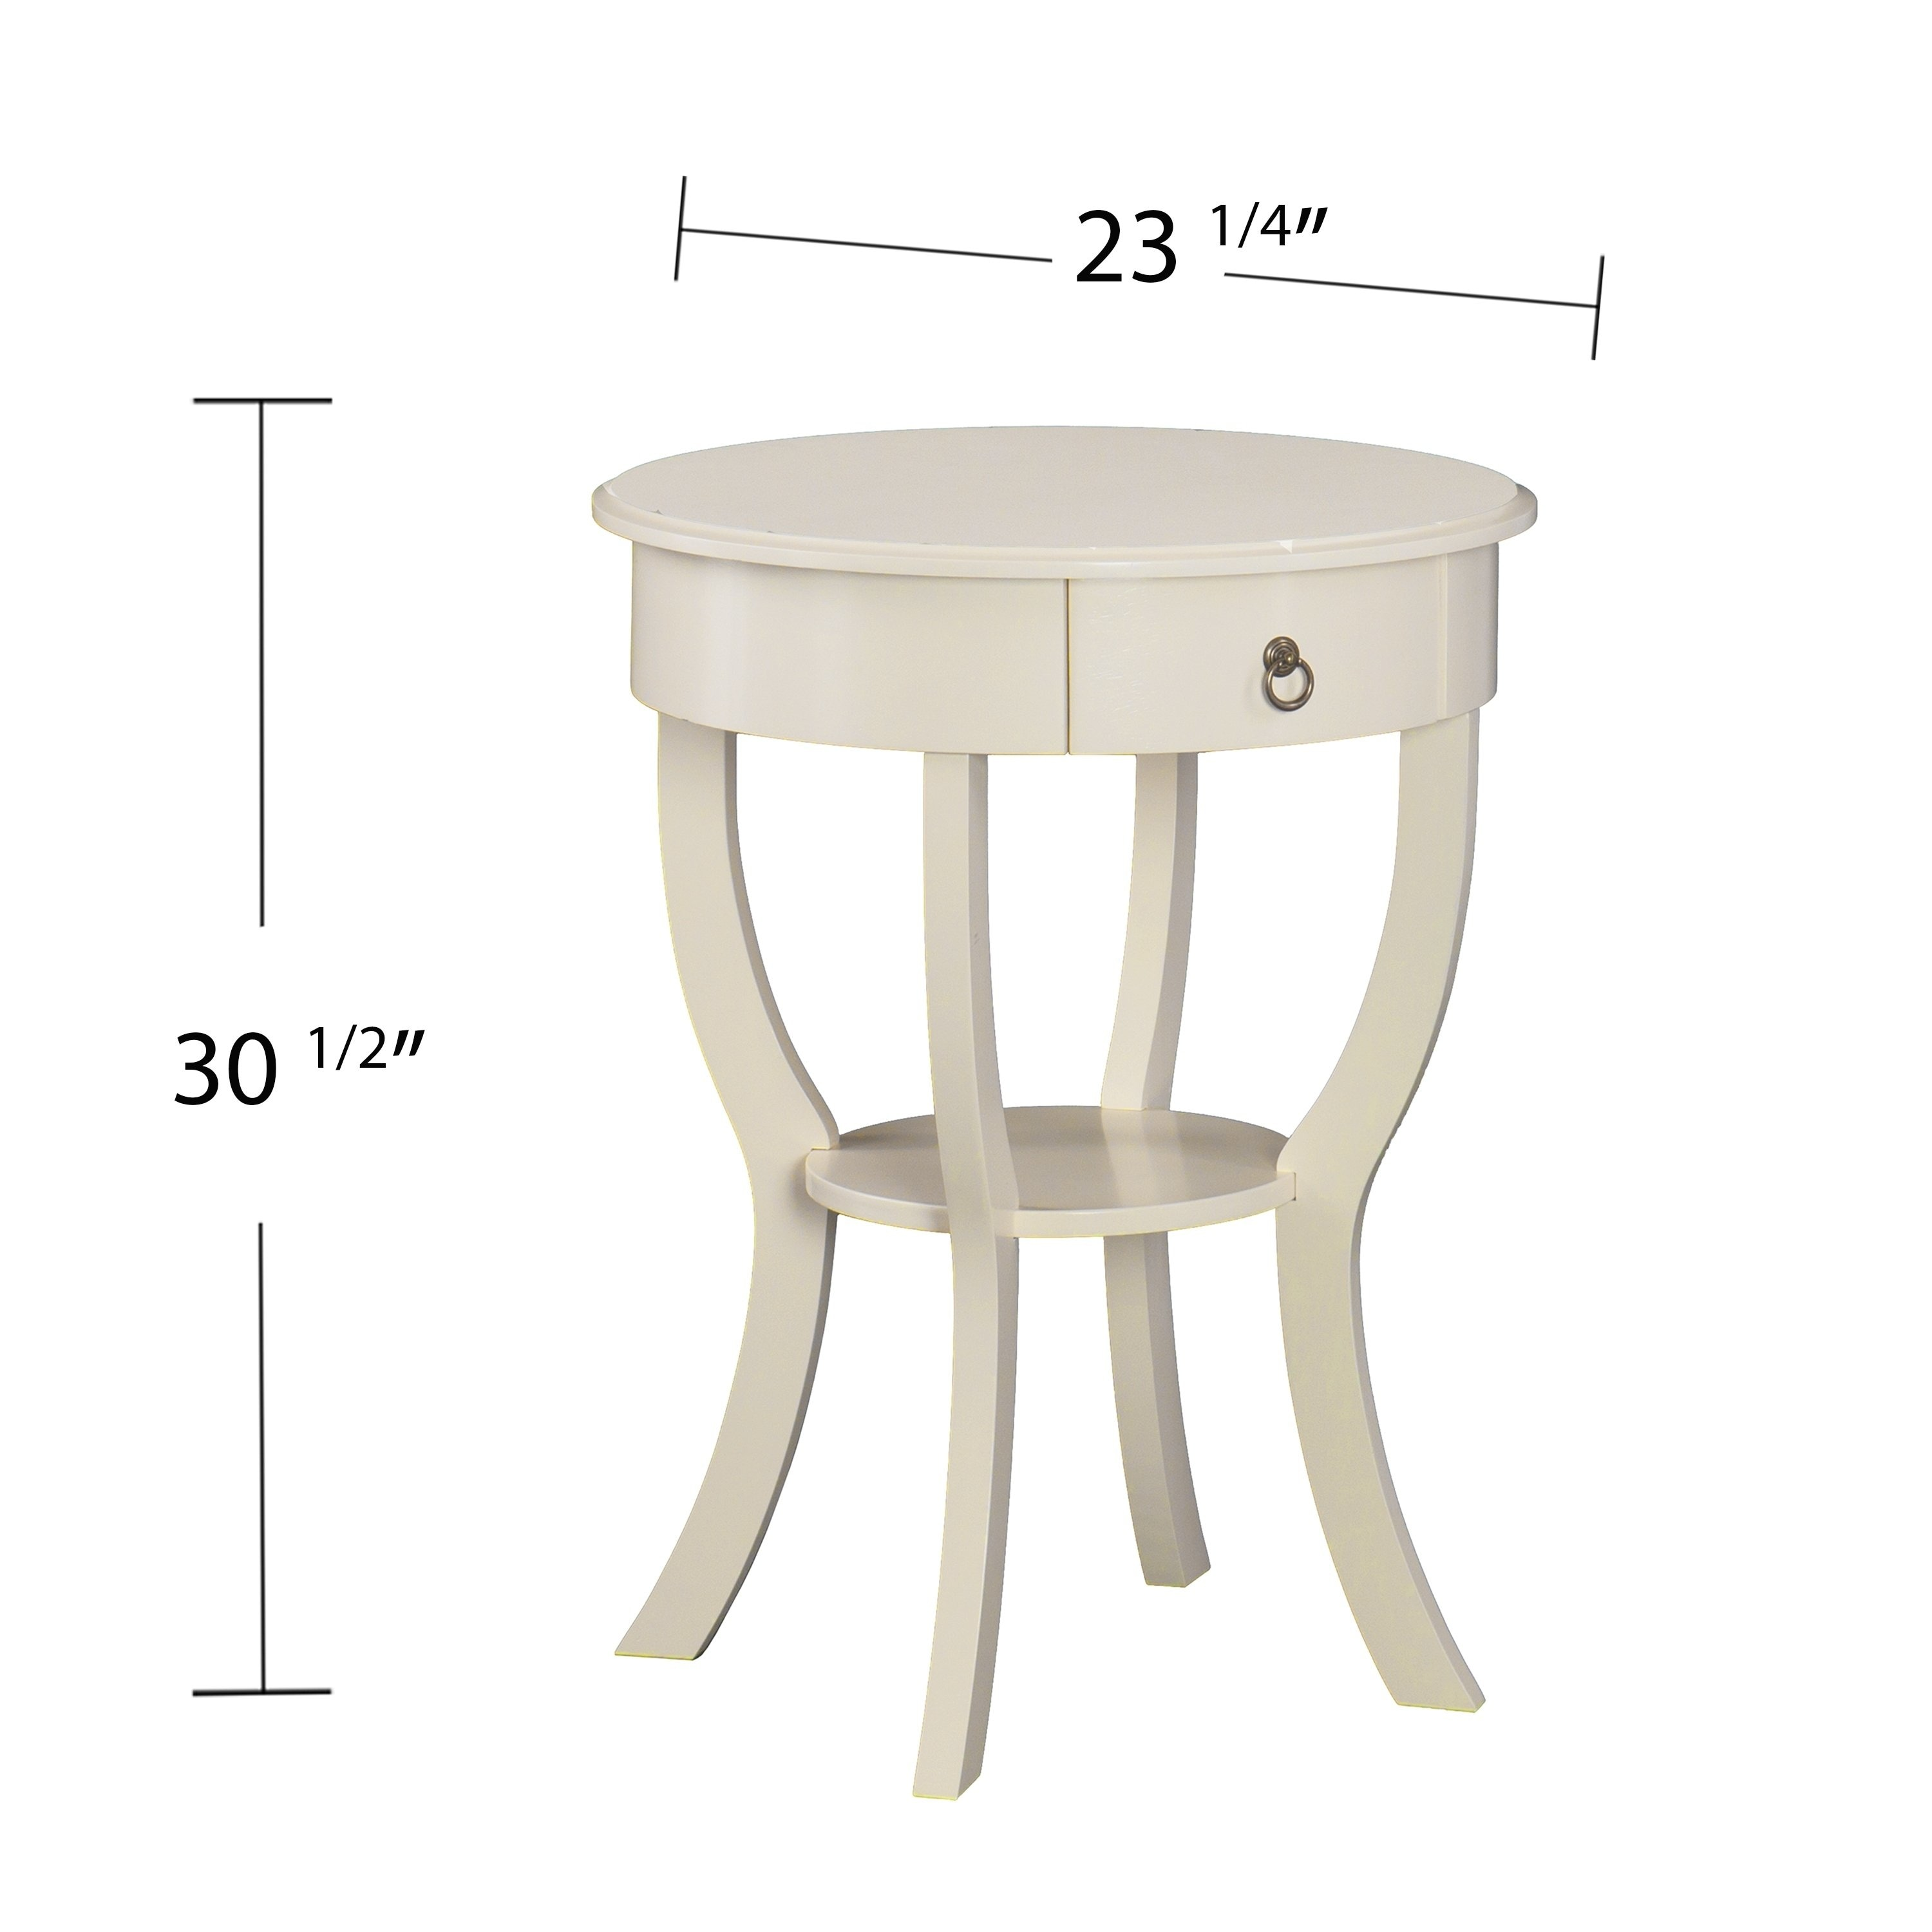 harper blvd lyman tall accent table with storage free outdoor shipping today small drop leaf kitchen chairs wooden patio umbrella hole mid century dinette sets nightstand drawers